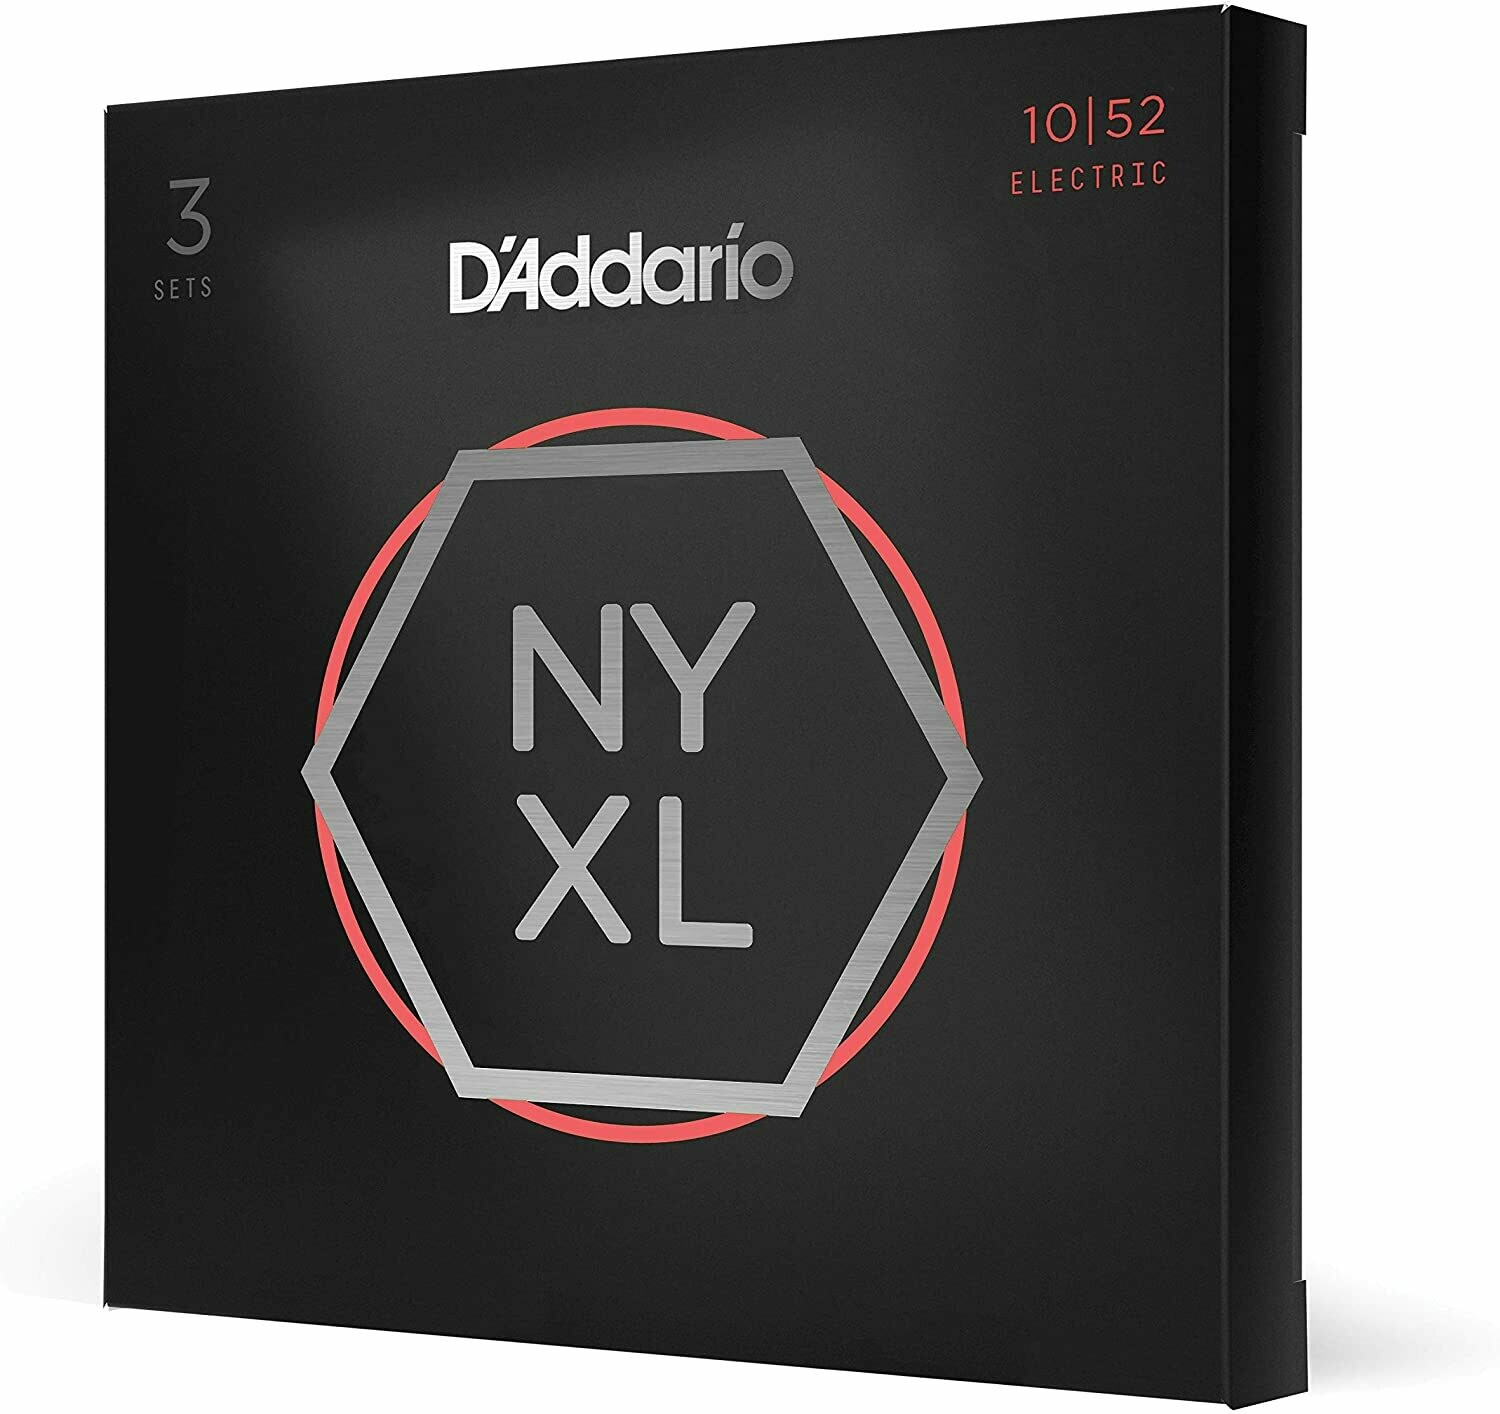 D'Addario Nyxl 1052 Nickel Wound Electric Guitar Strings, Light Top/ Heavy Bottom, 10-52, 3 Sets (NYXL1052-3P)